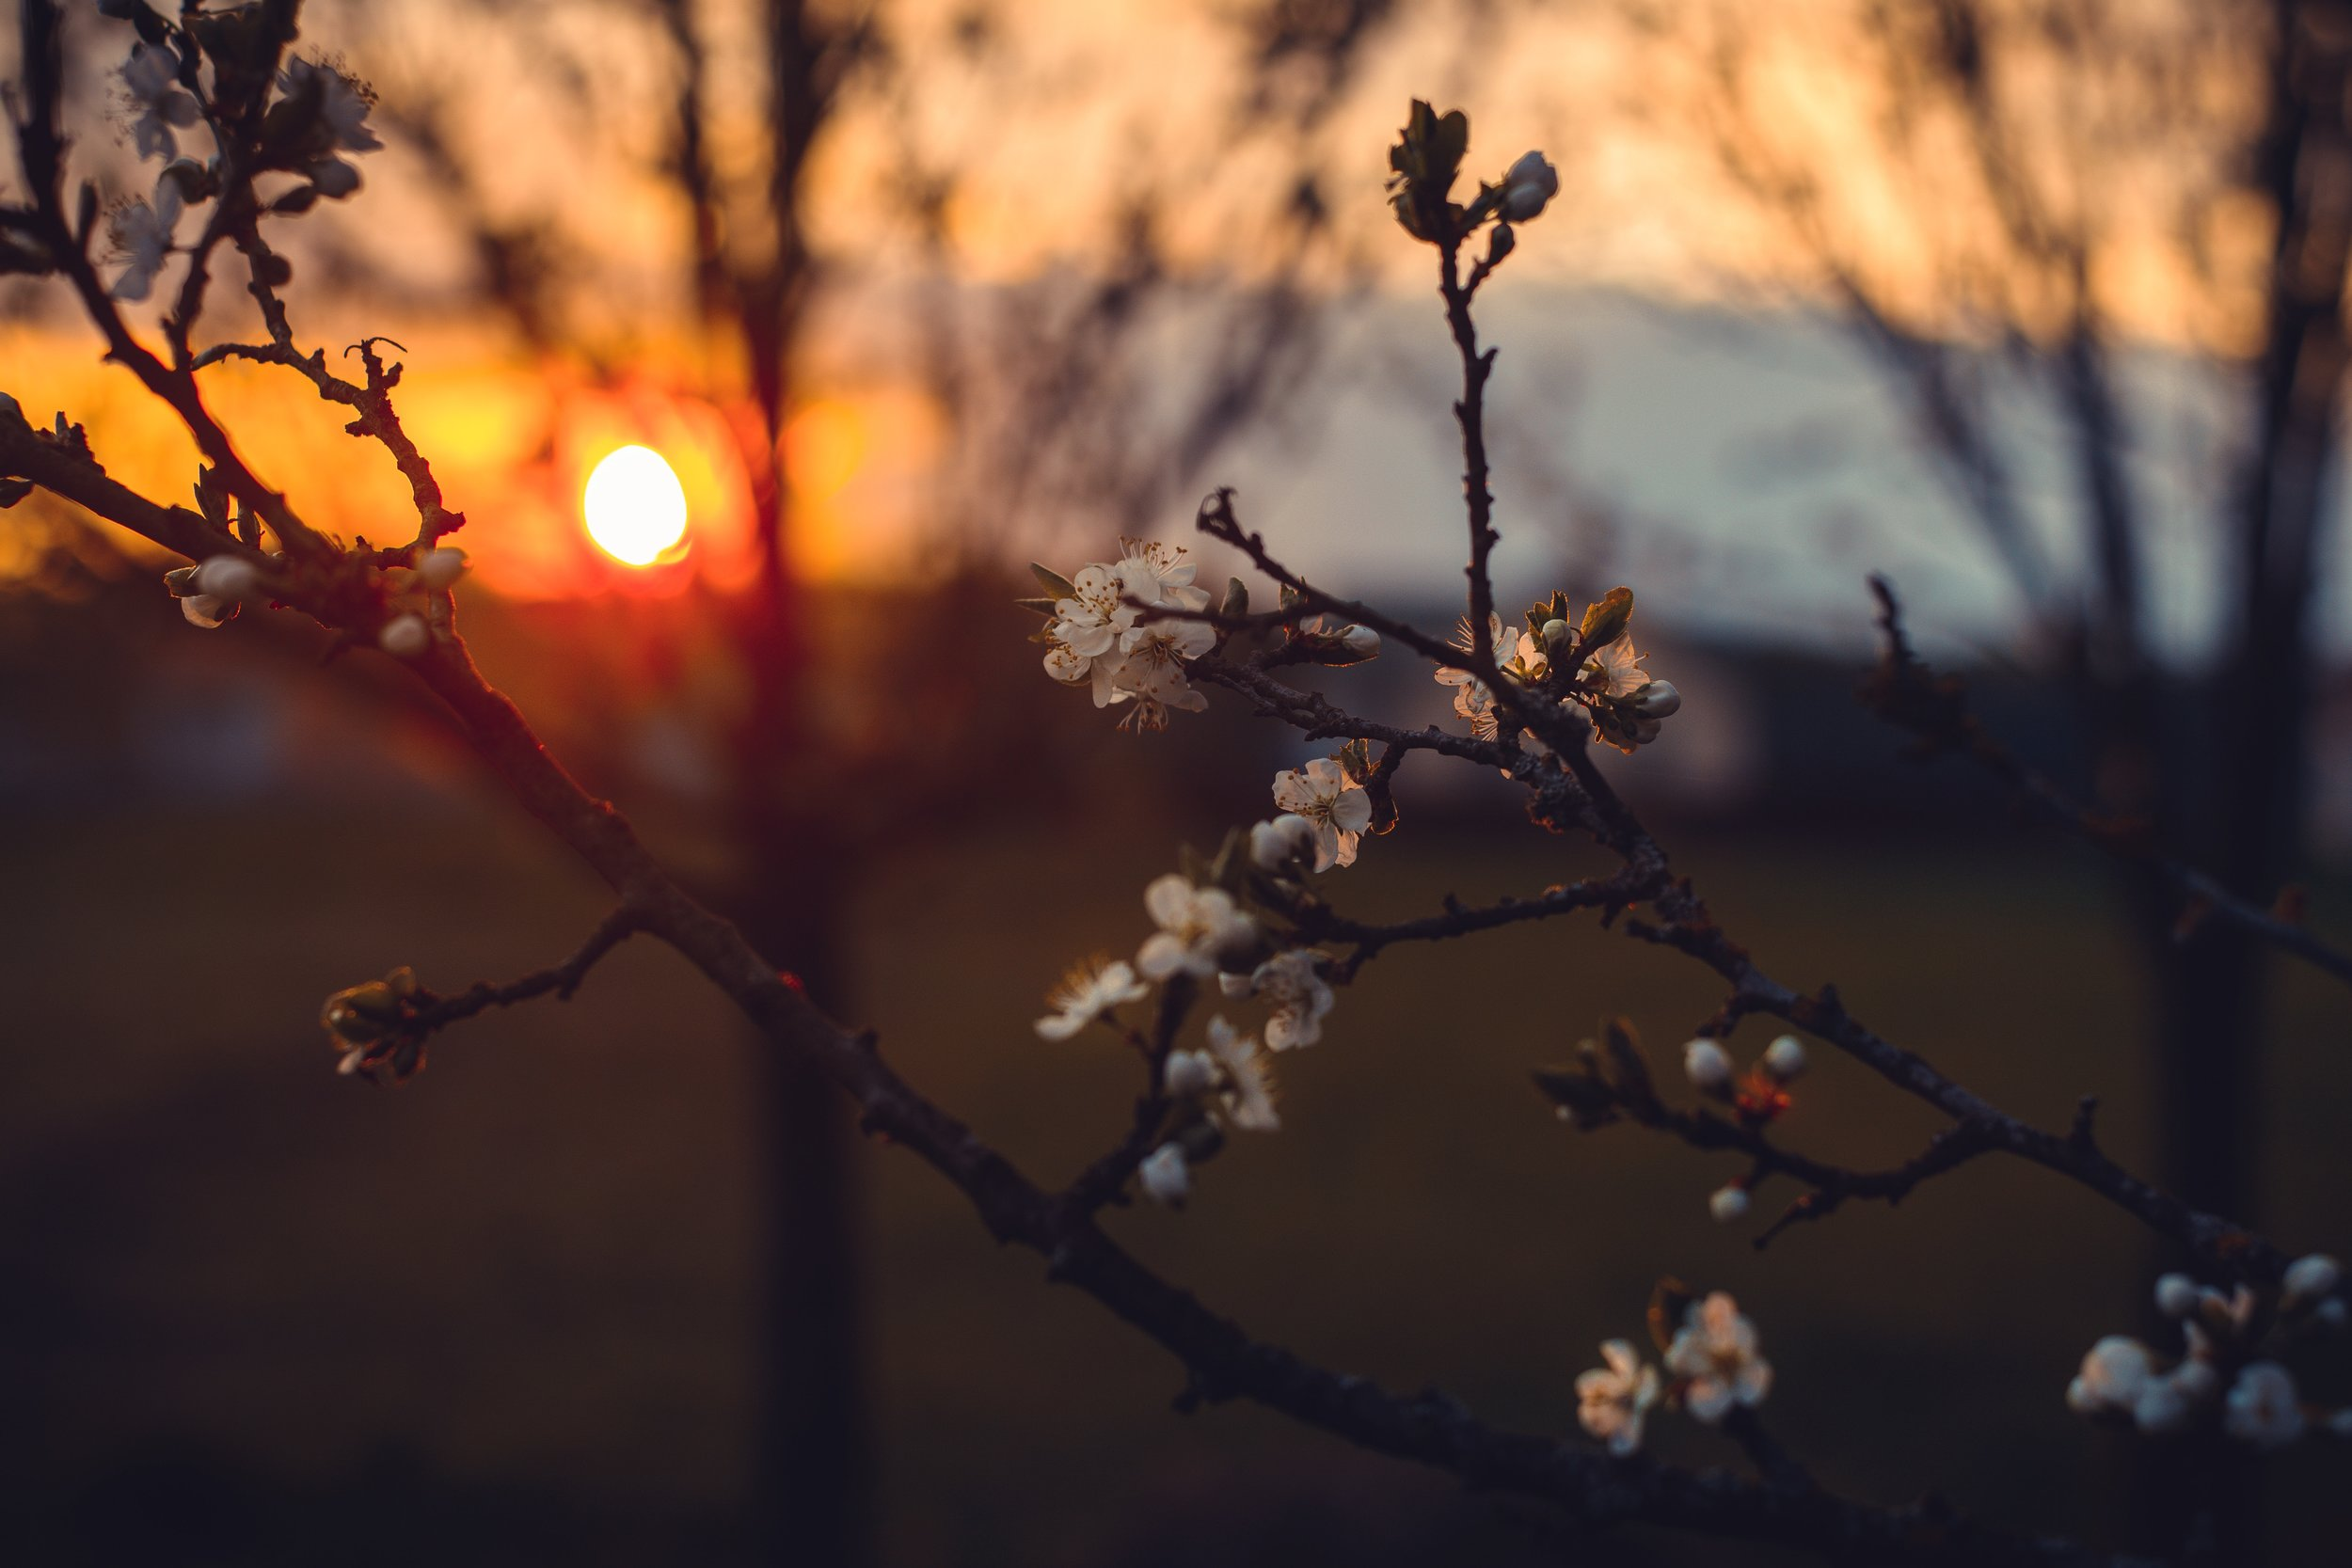 atmospheric-beautiful-blossom-1008405.jpg